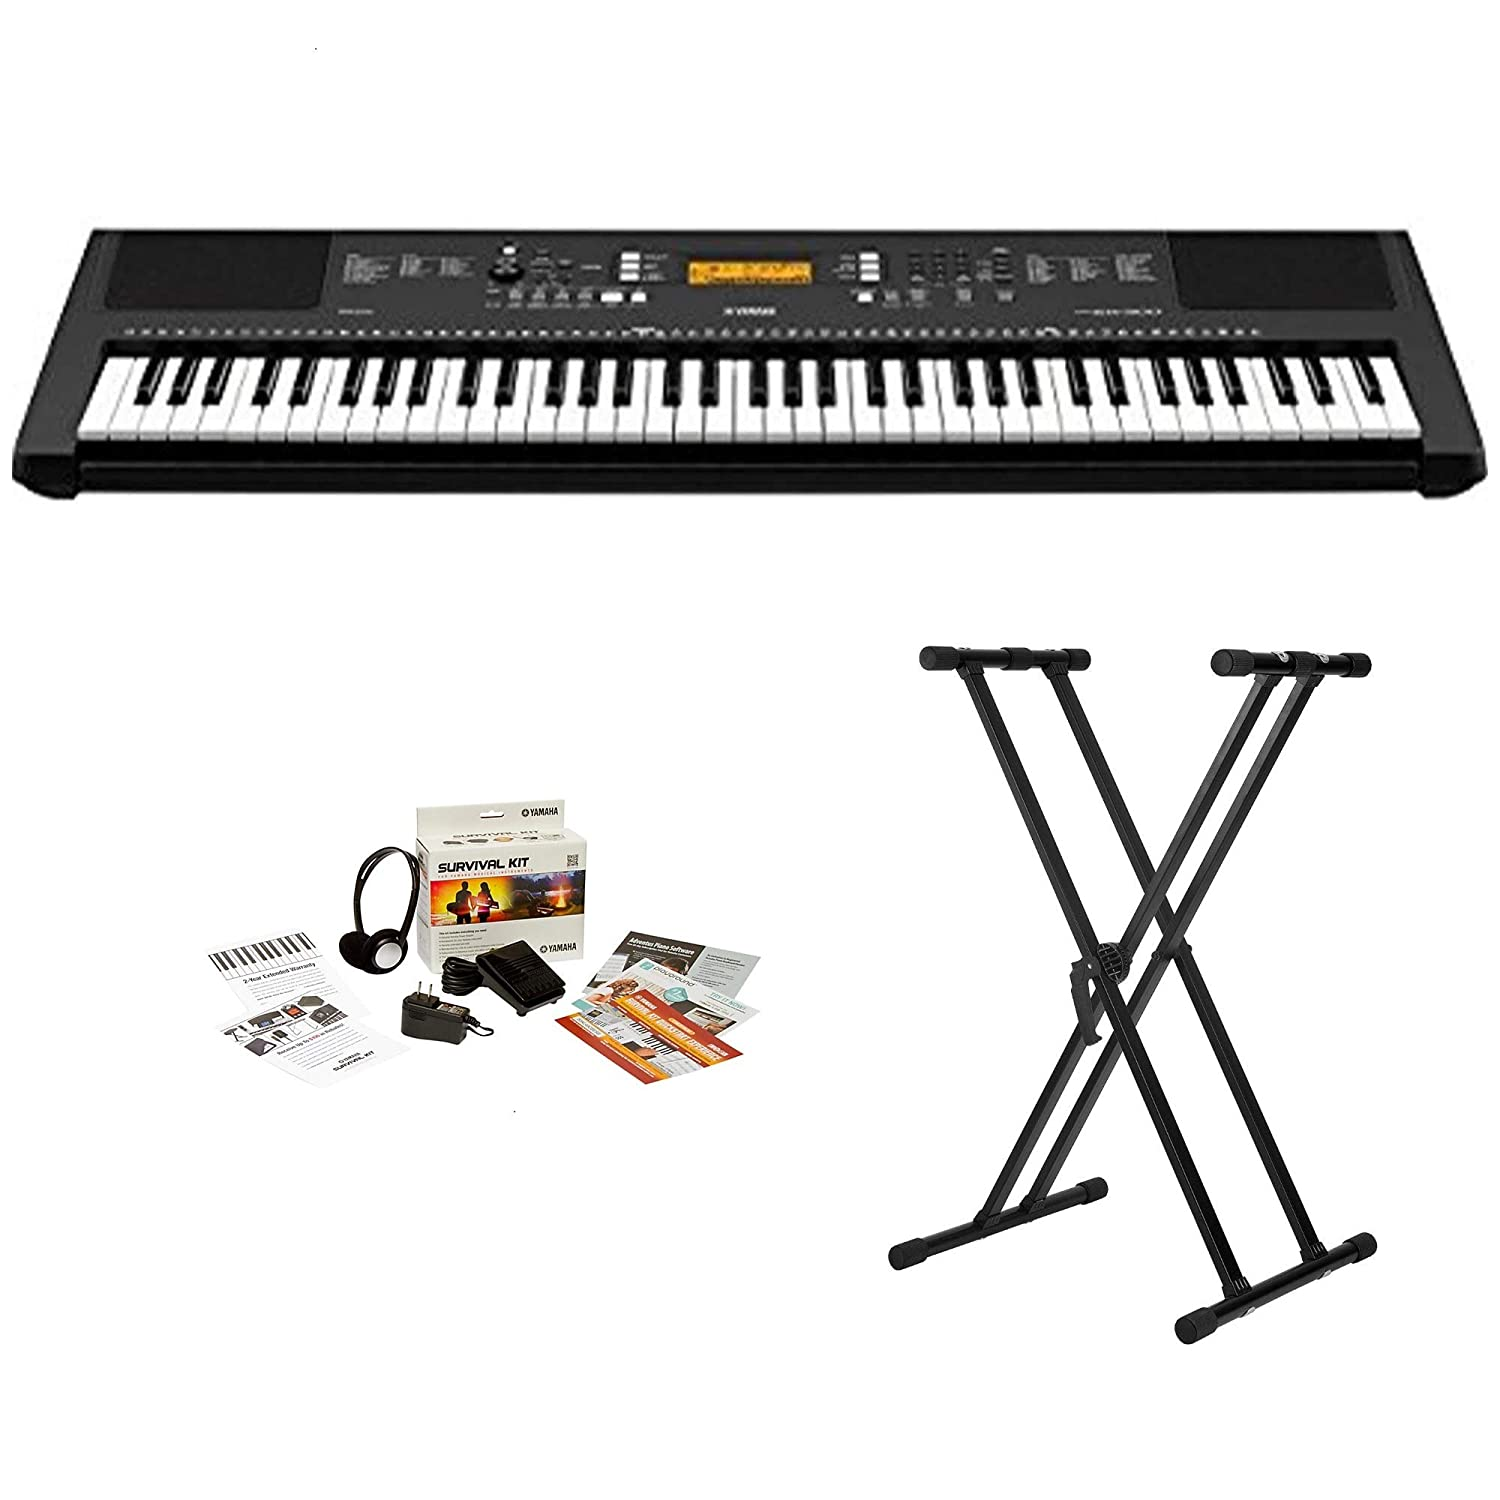 Yamaha PRSEW300 76 Key Portable Keyboard With Knox Adjustable Stand /& Power Adapter